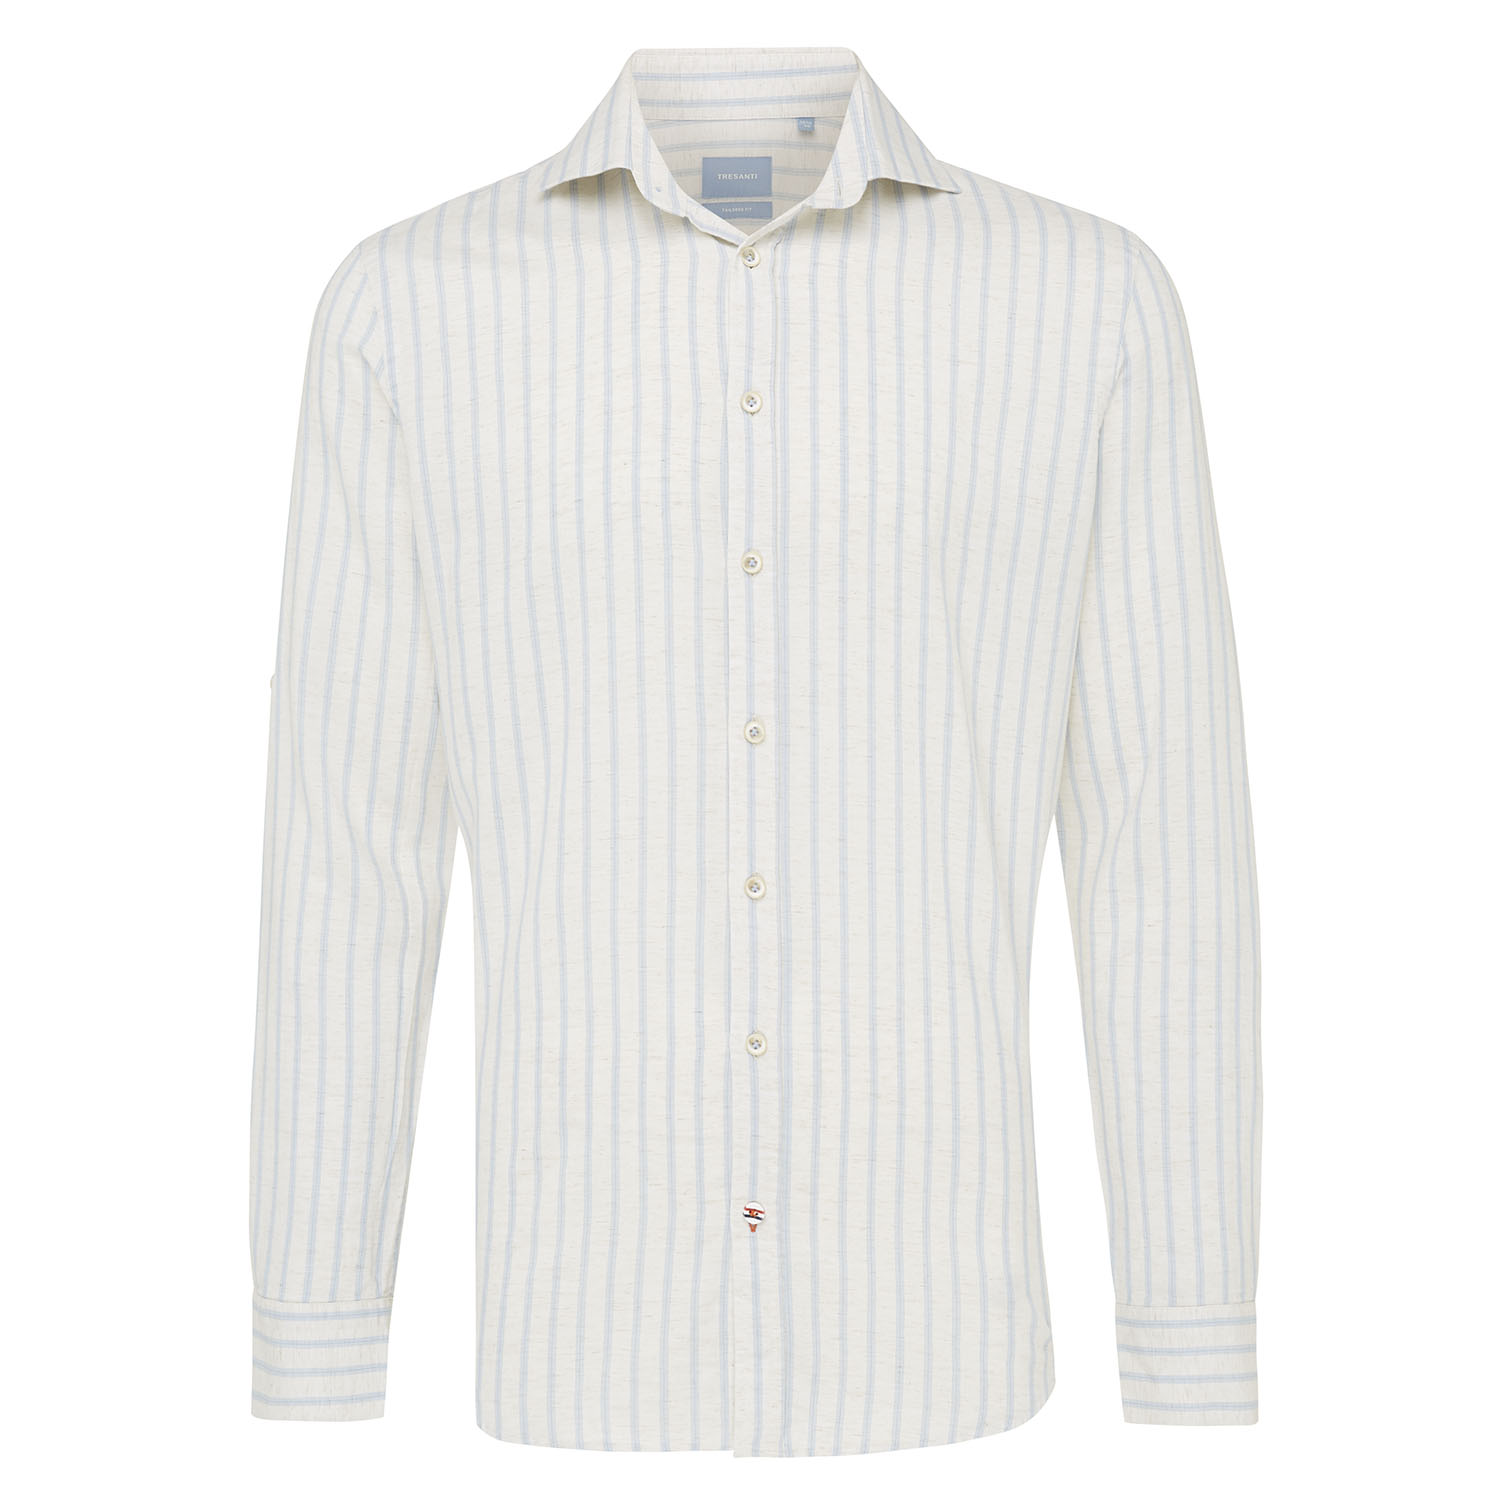 Moos | Shirt vertical stripe light blue